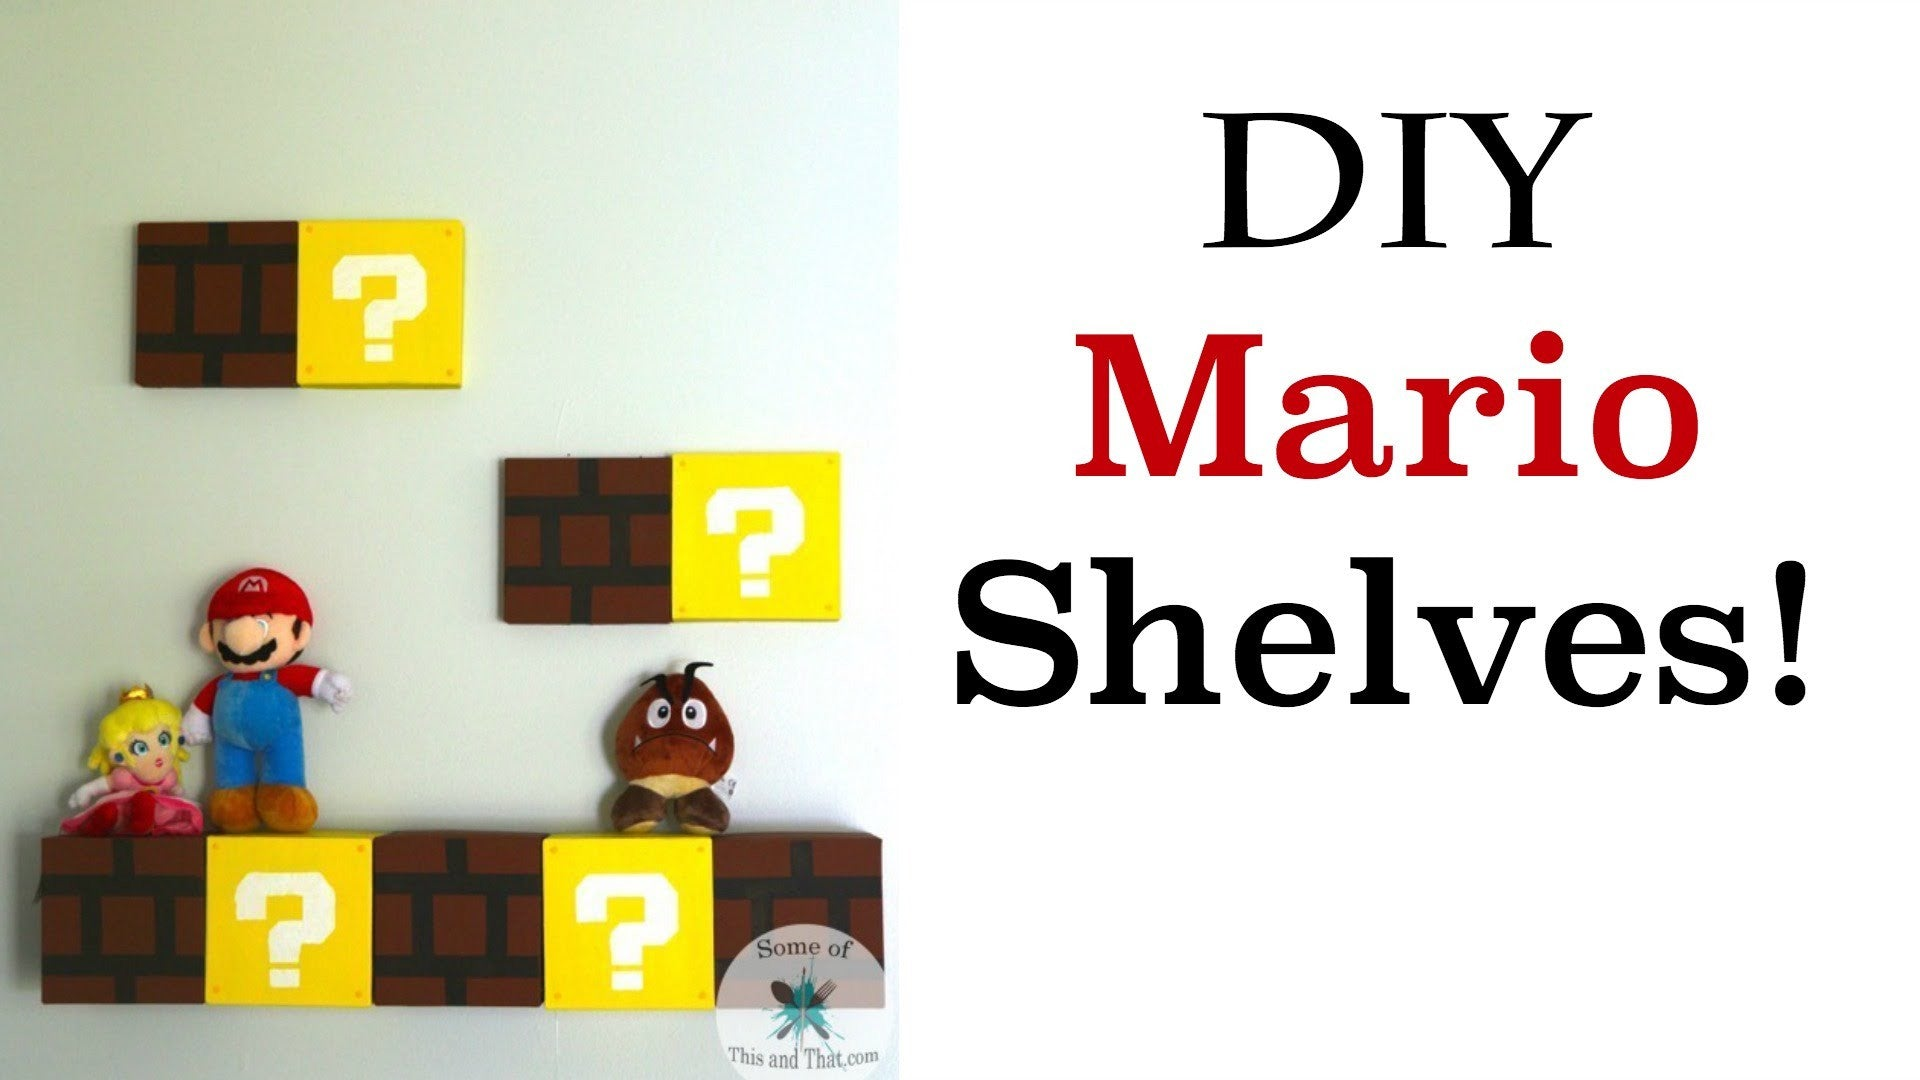 I Found a Thing - Super Mario Shelves DIY!